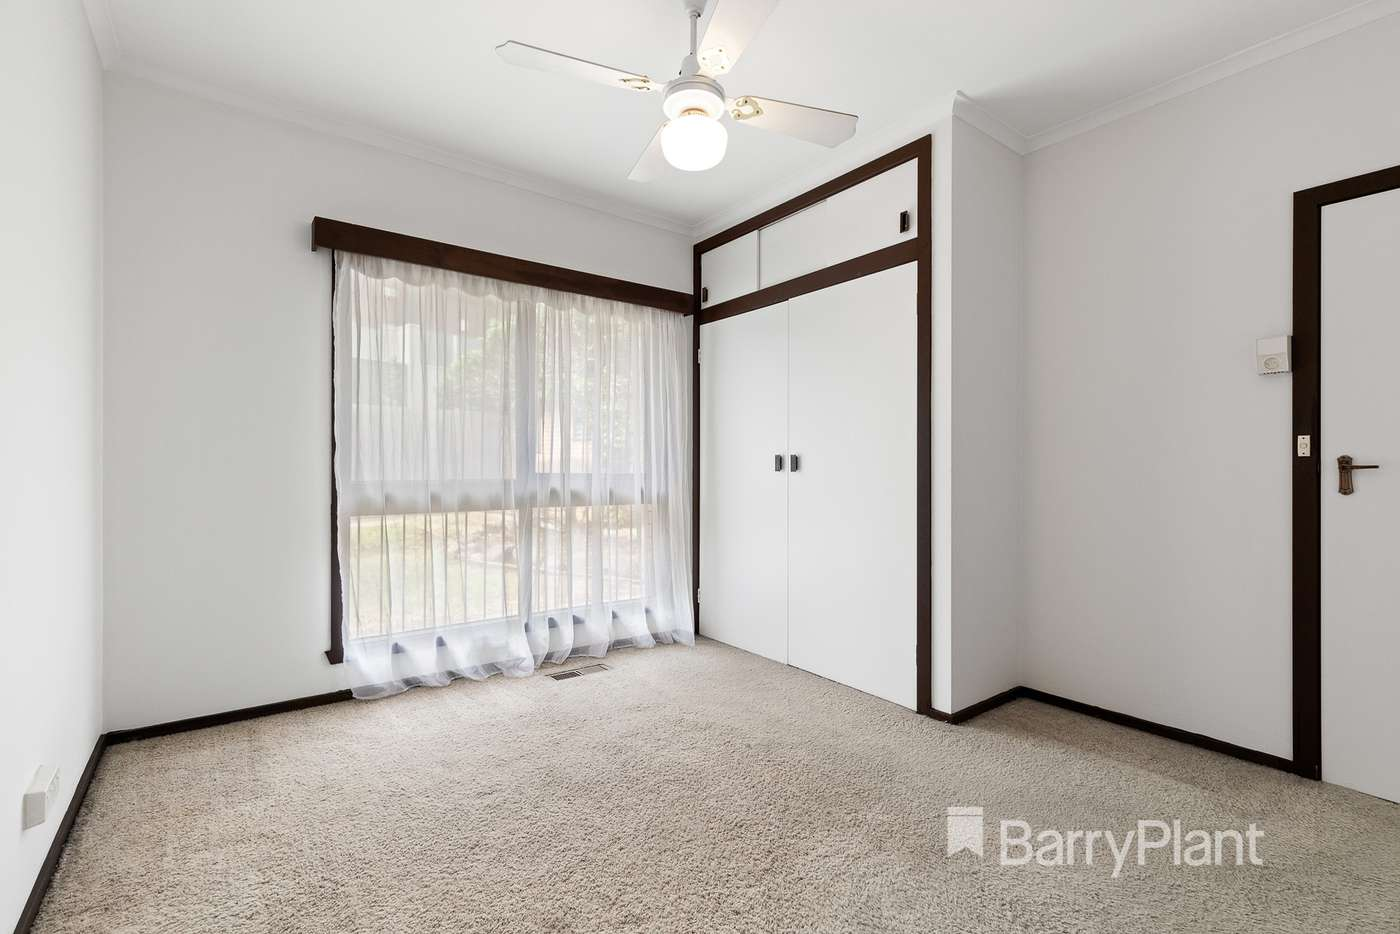 Fifth view of Homely unit listing, 2/50 Elizabeth Street, Coburg VIC 3058